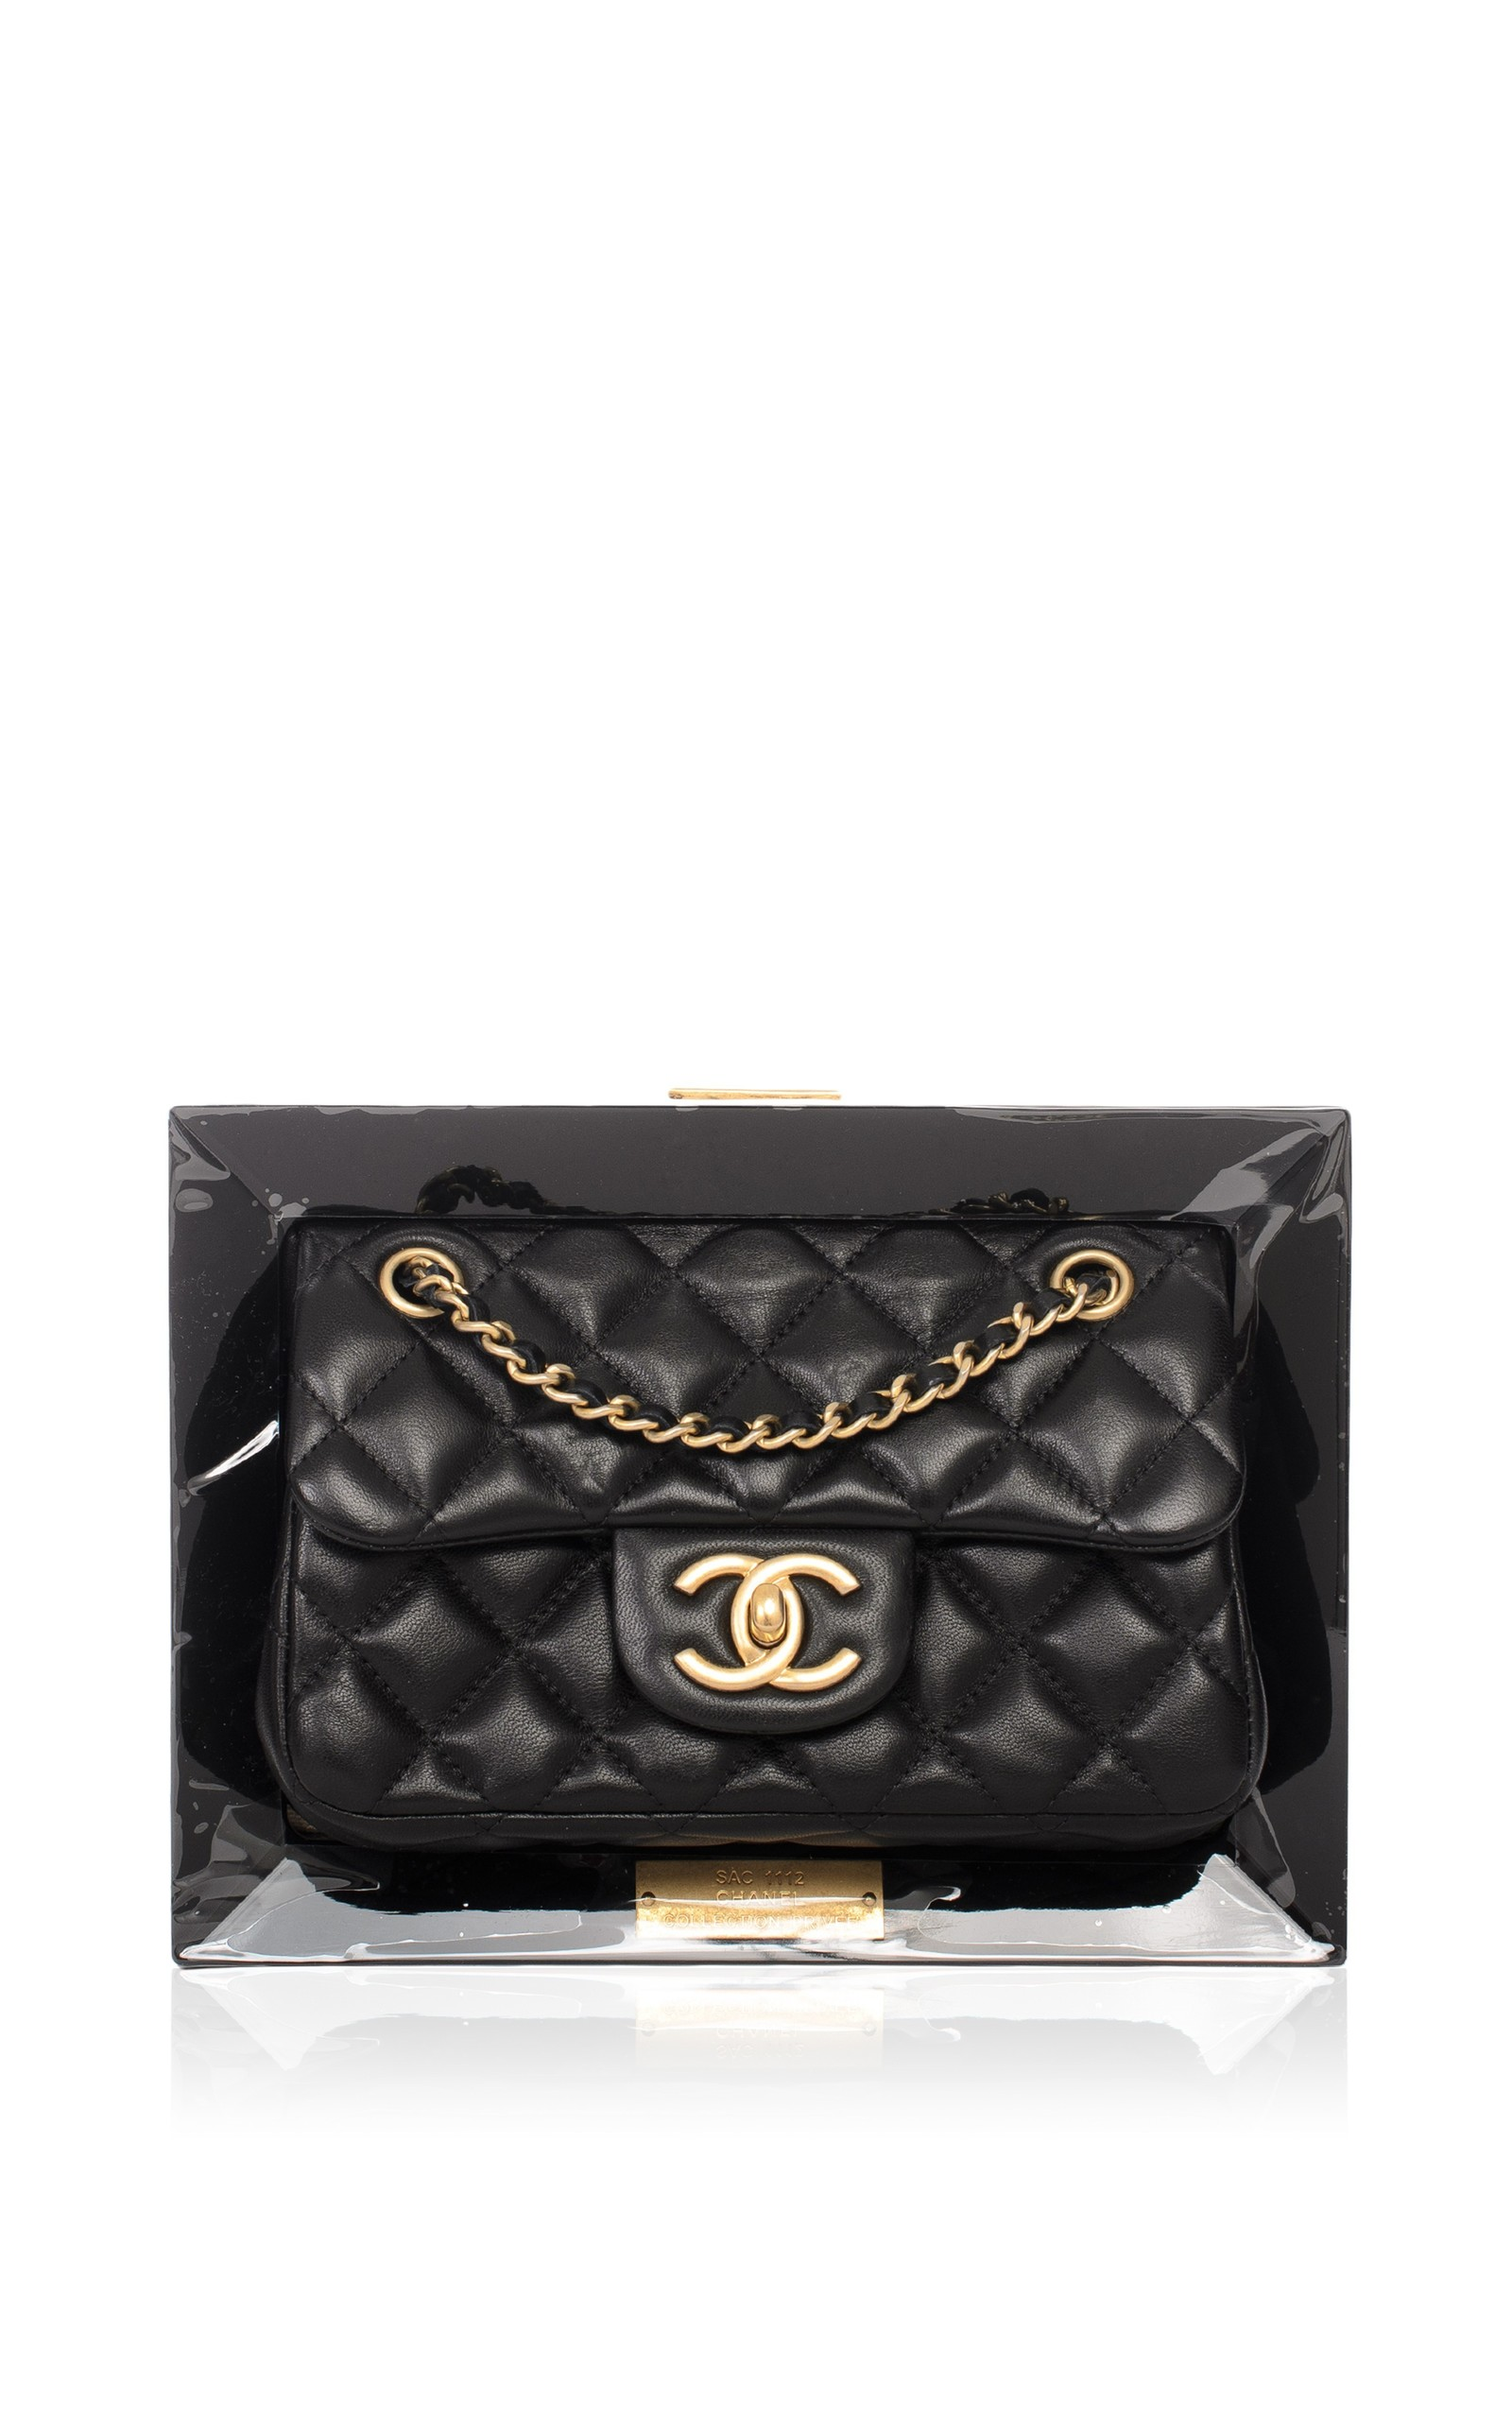 6293244644f92a Hermes VintageChanel Limited Edition Vip Black Frame Bag. CLOSE. Loading